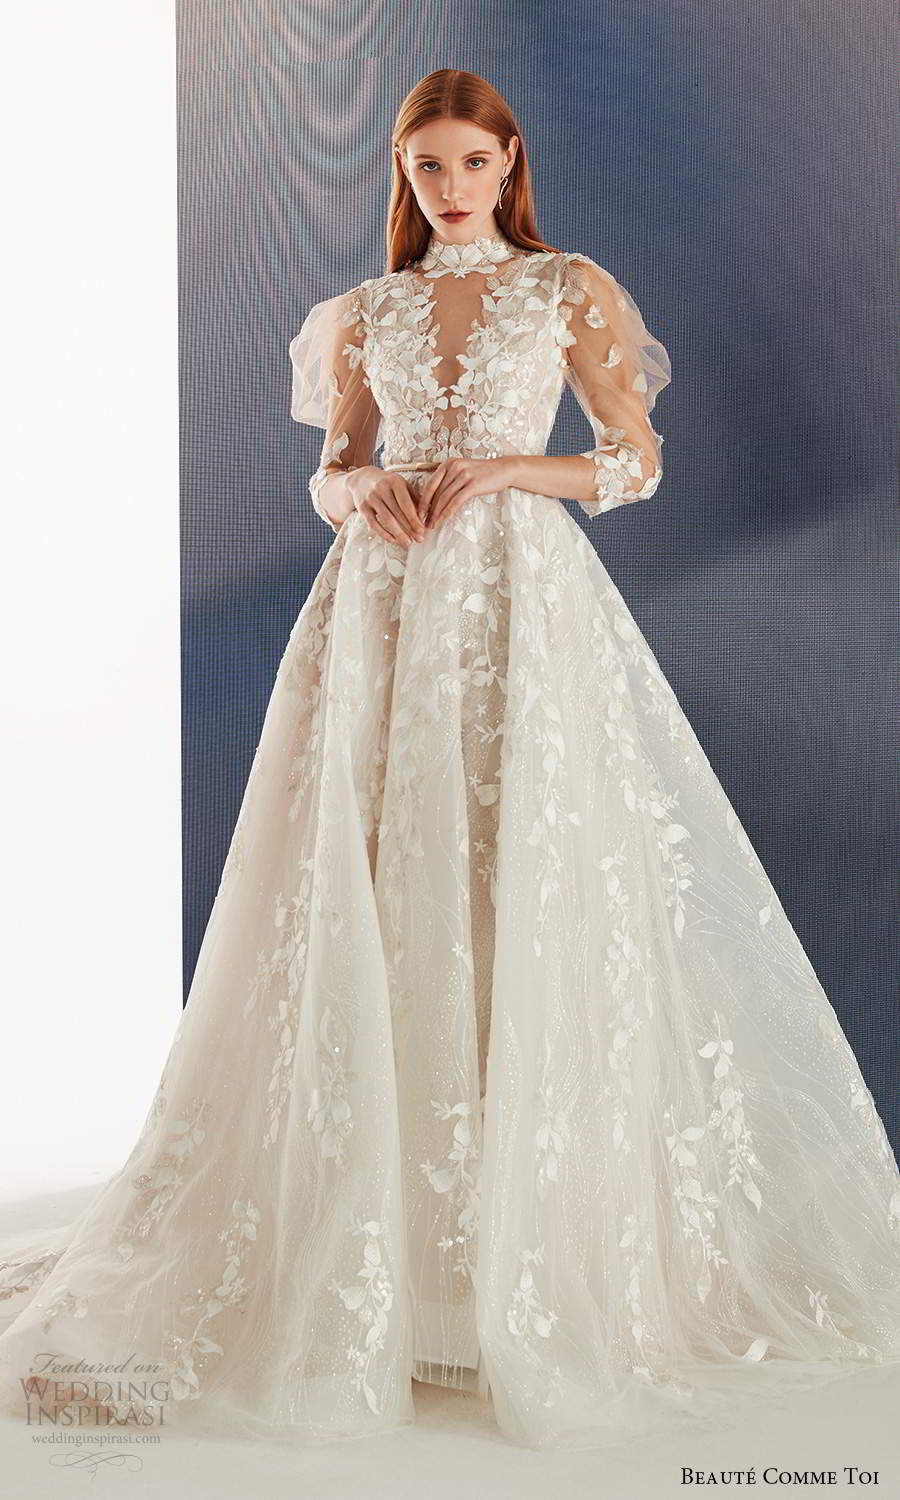 beaute comme toi fall 2021 bridal illusion puff sleeves high neckline cutout bodice fully embellished a line ball gown wedding dress chapel train (1) mv